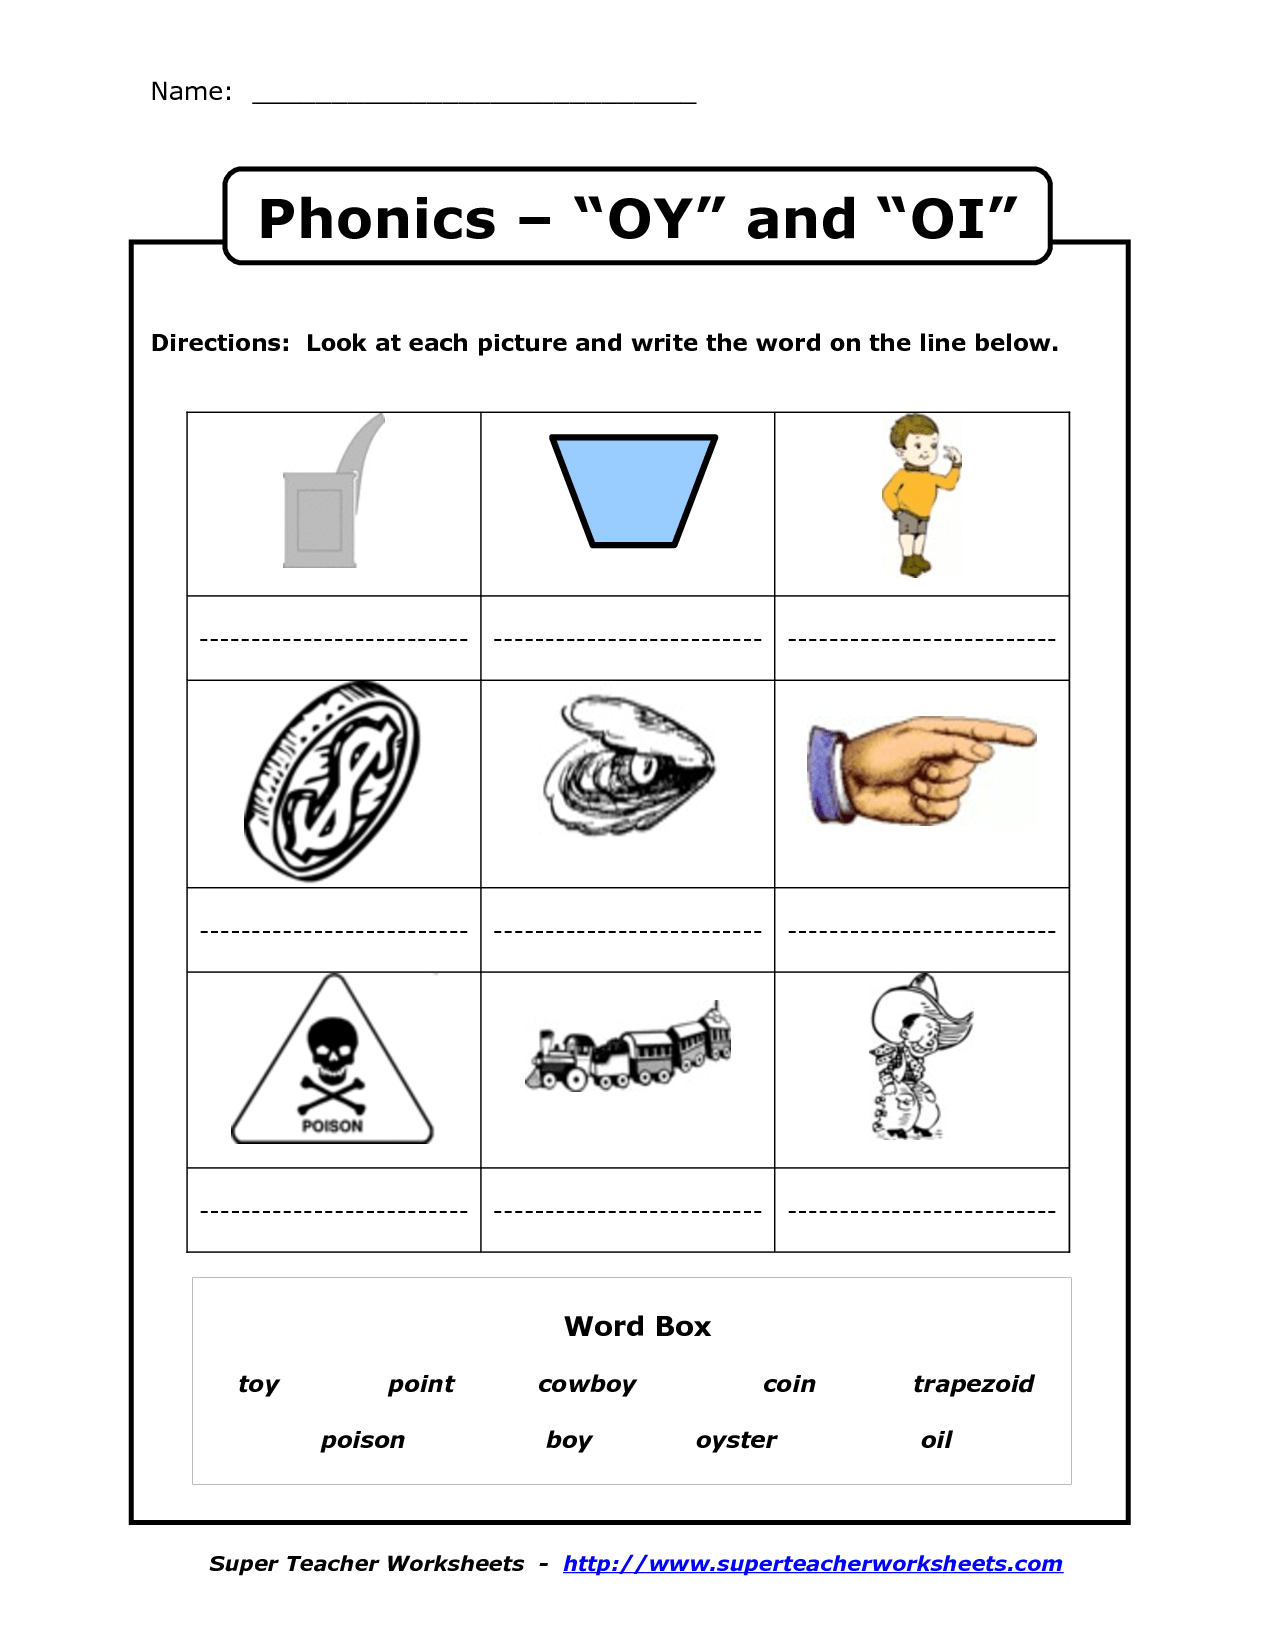 Oy And Oi Phonics Worksheets